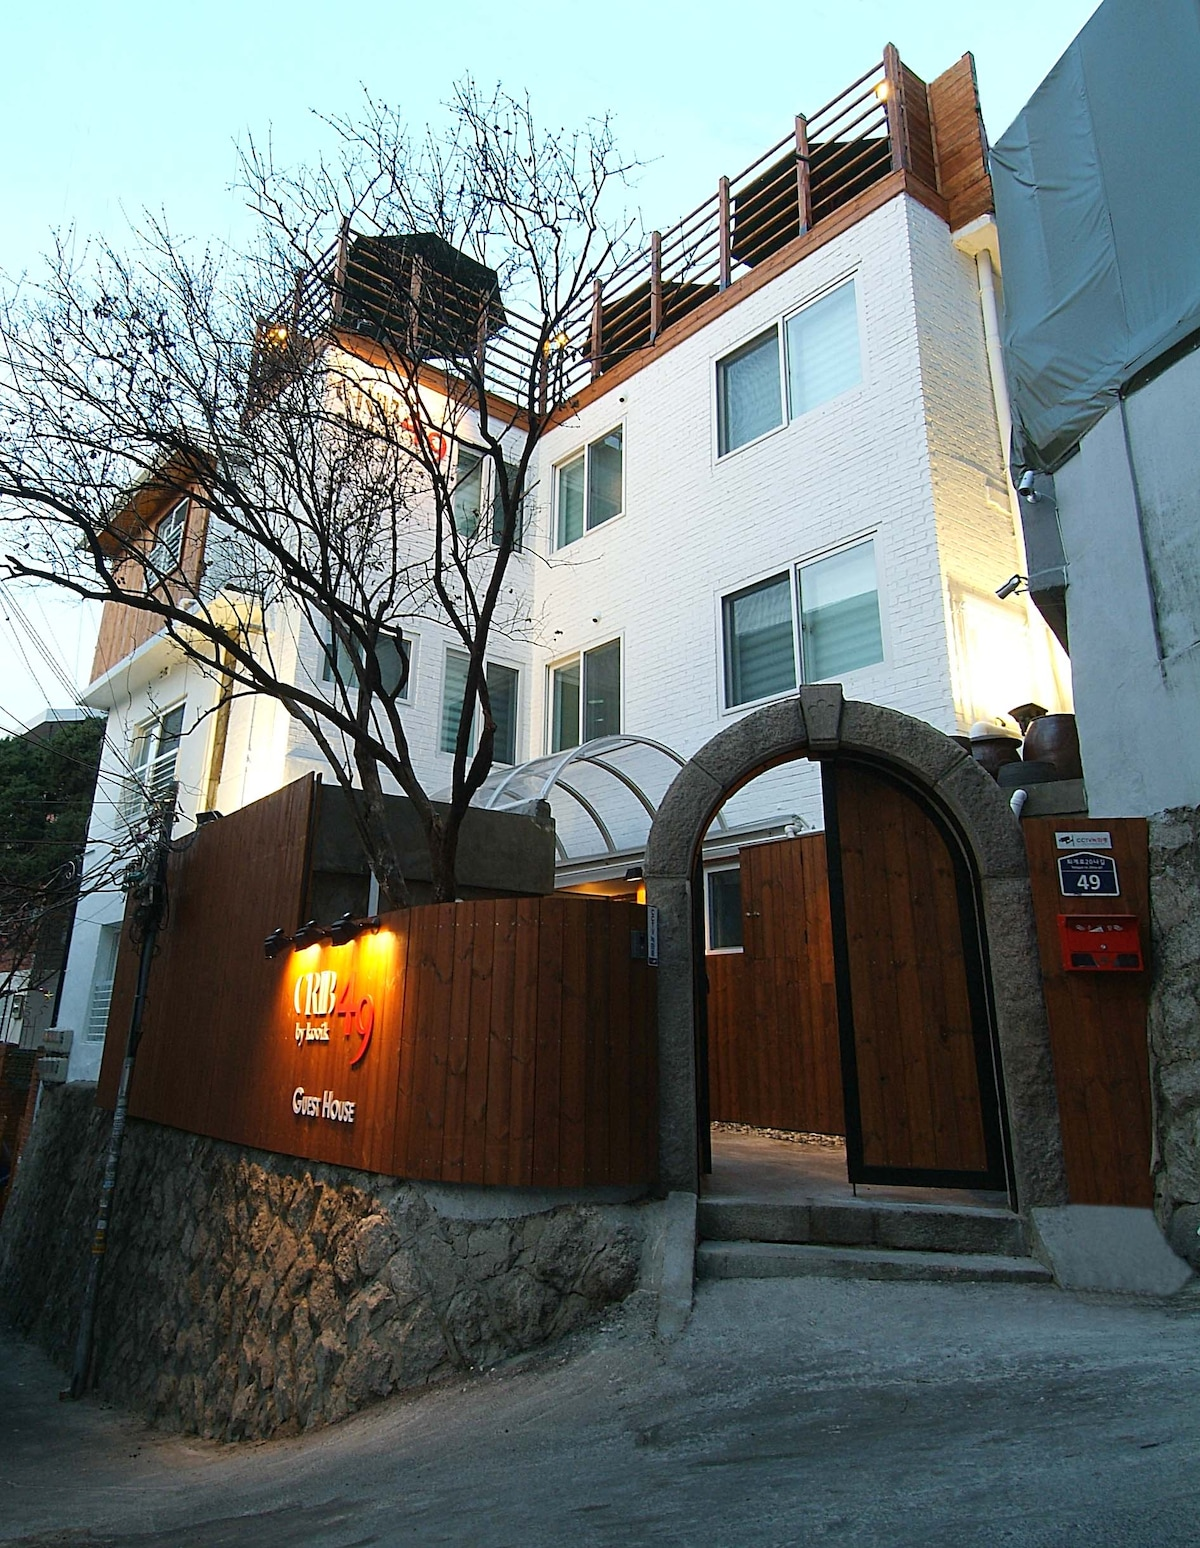 The main entrance of our GuestHouse